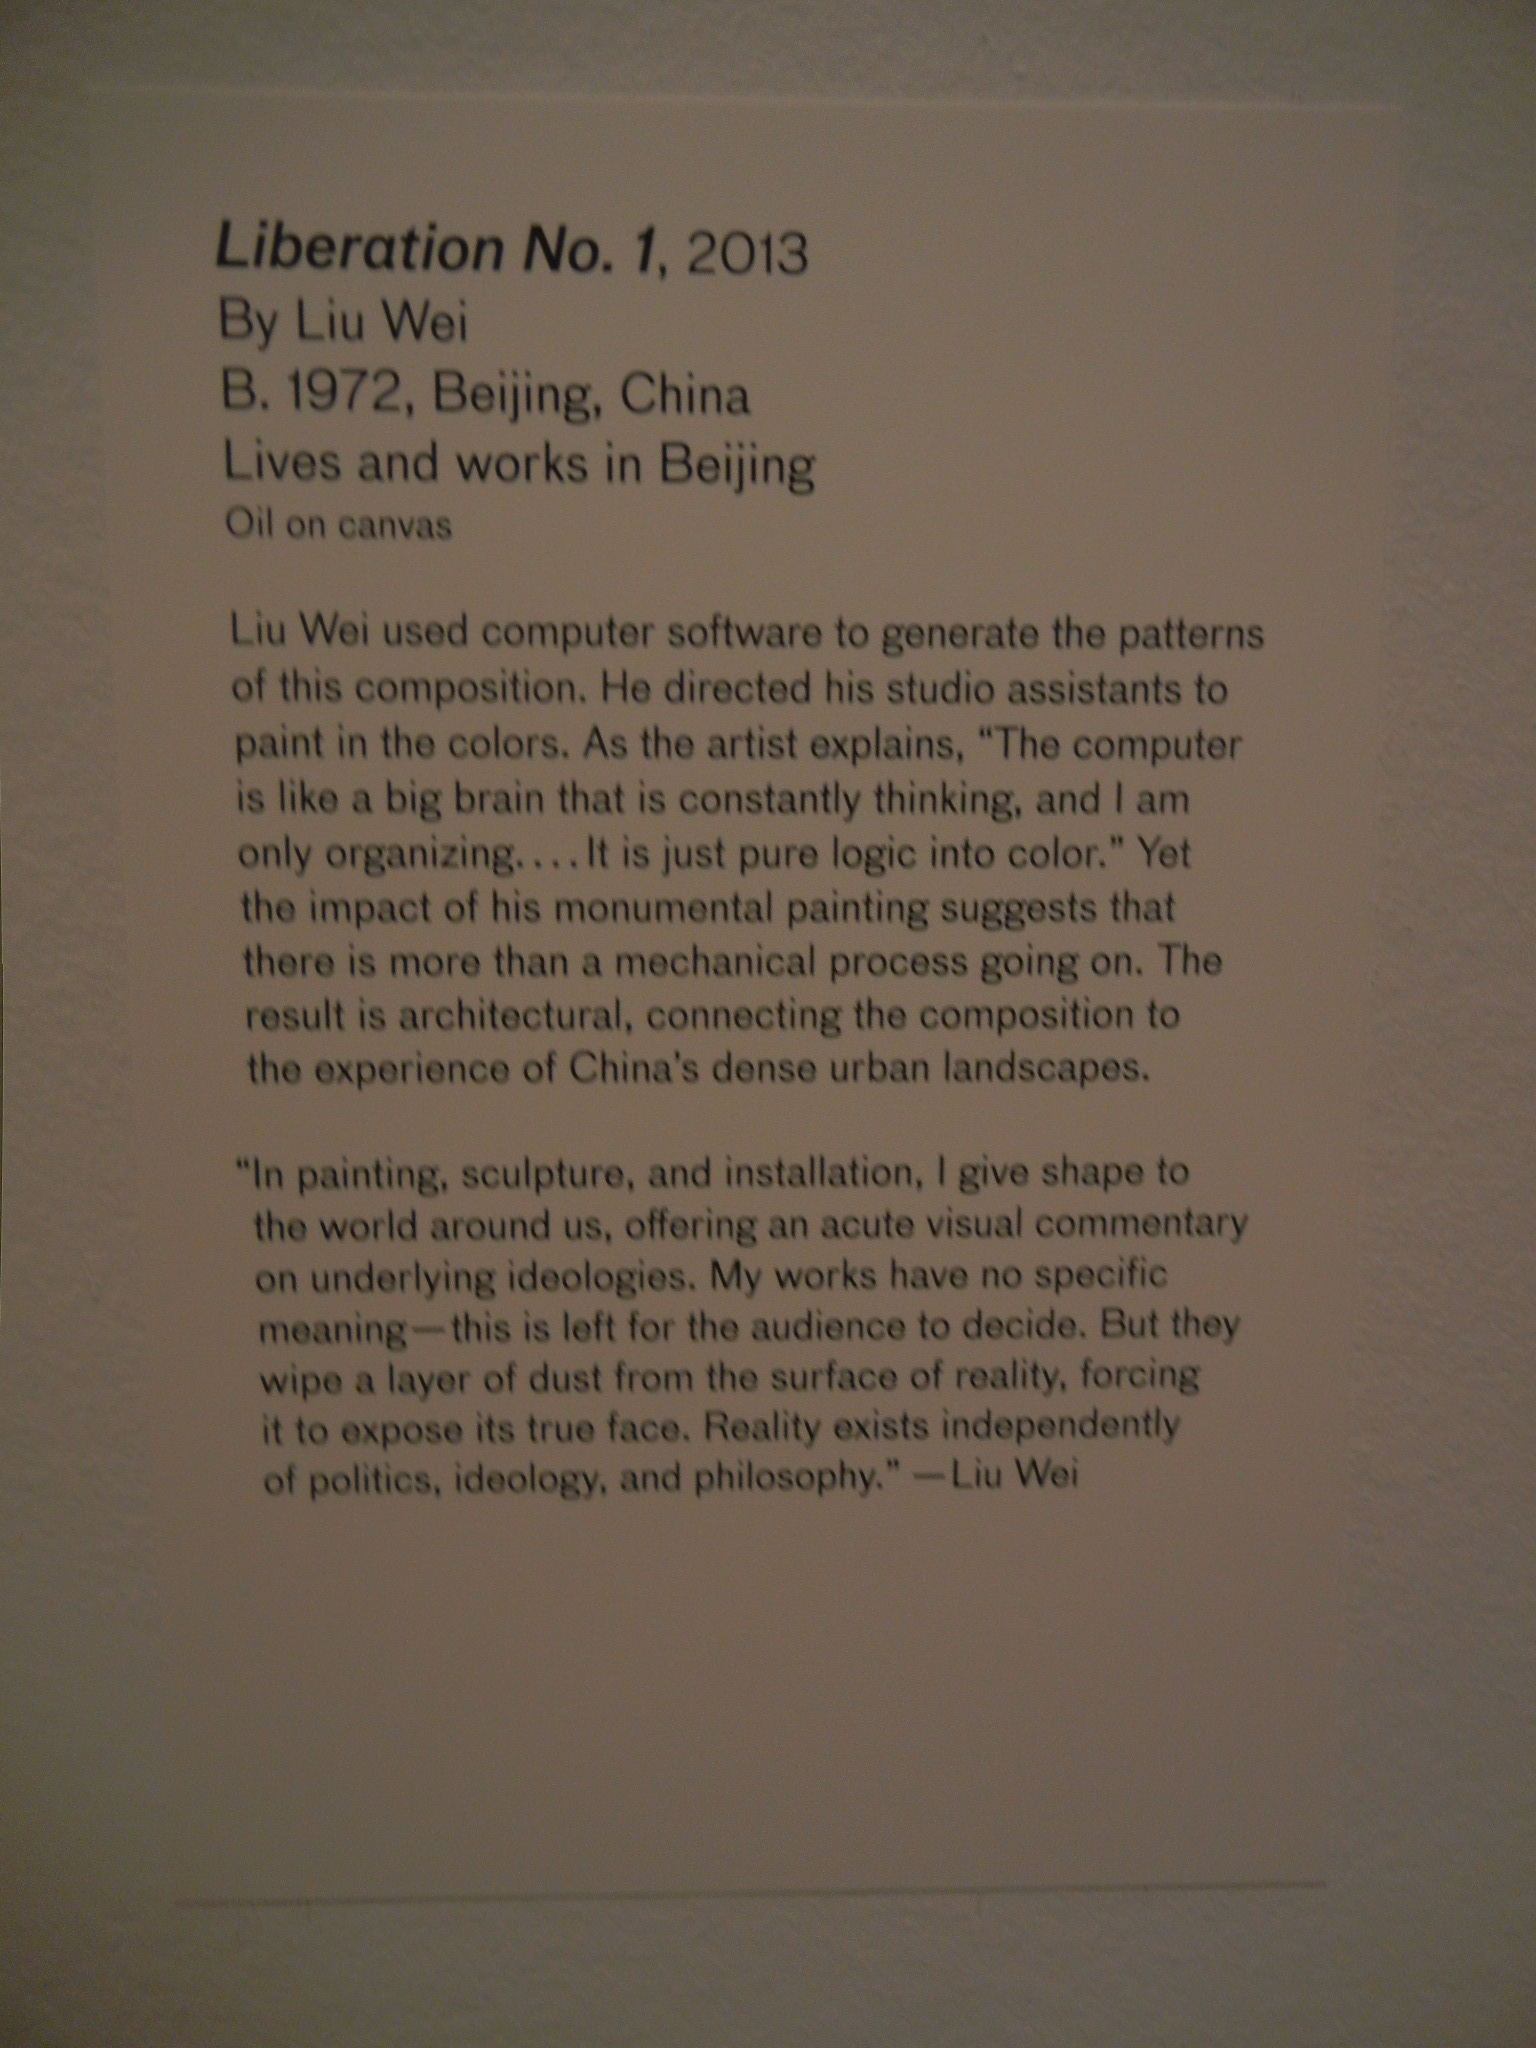 DSCN4642 _ 28 Chinese - Liberation No. 1, 2013, Wei LIU, Asian Art Museum